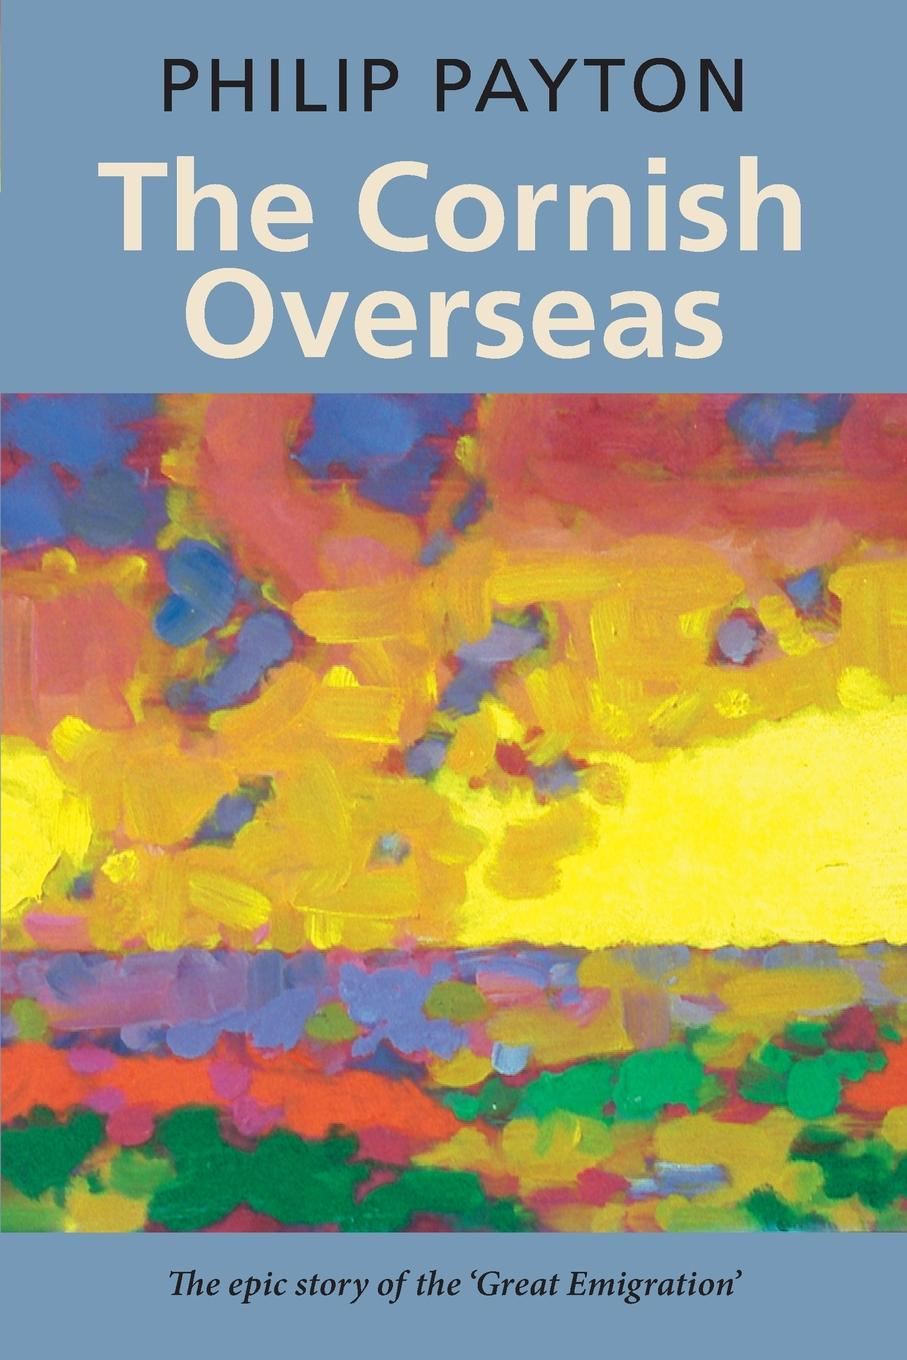 Philip Payton The Cornish Overseas. The Epic Story of the great Emigration richard overy the times history of the world